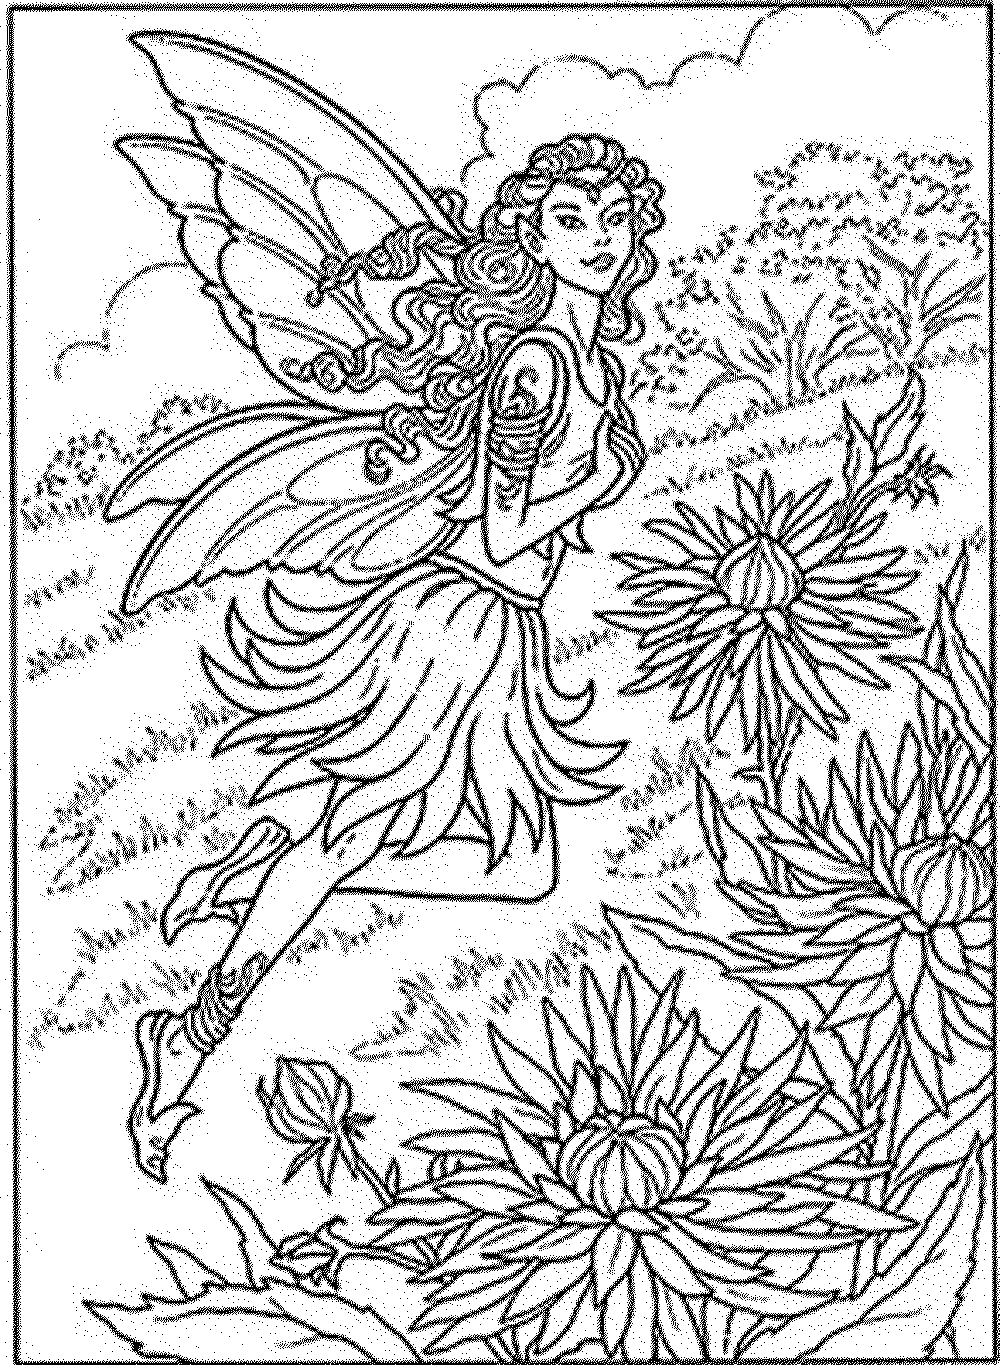 Free Printable Intricate Coloring Pages for Adults Intricate Coloring Pages for Adults Coloring Home